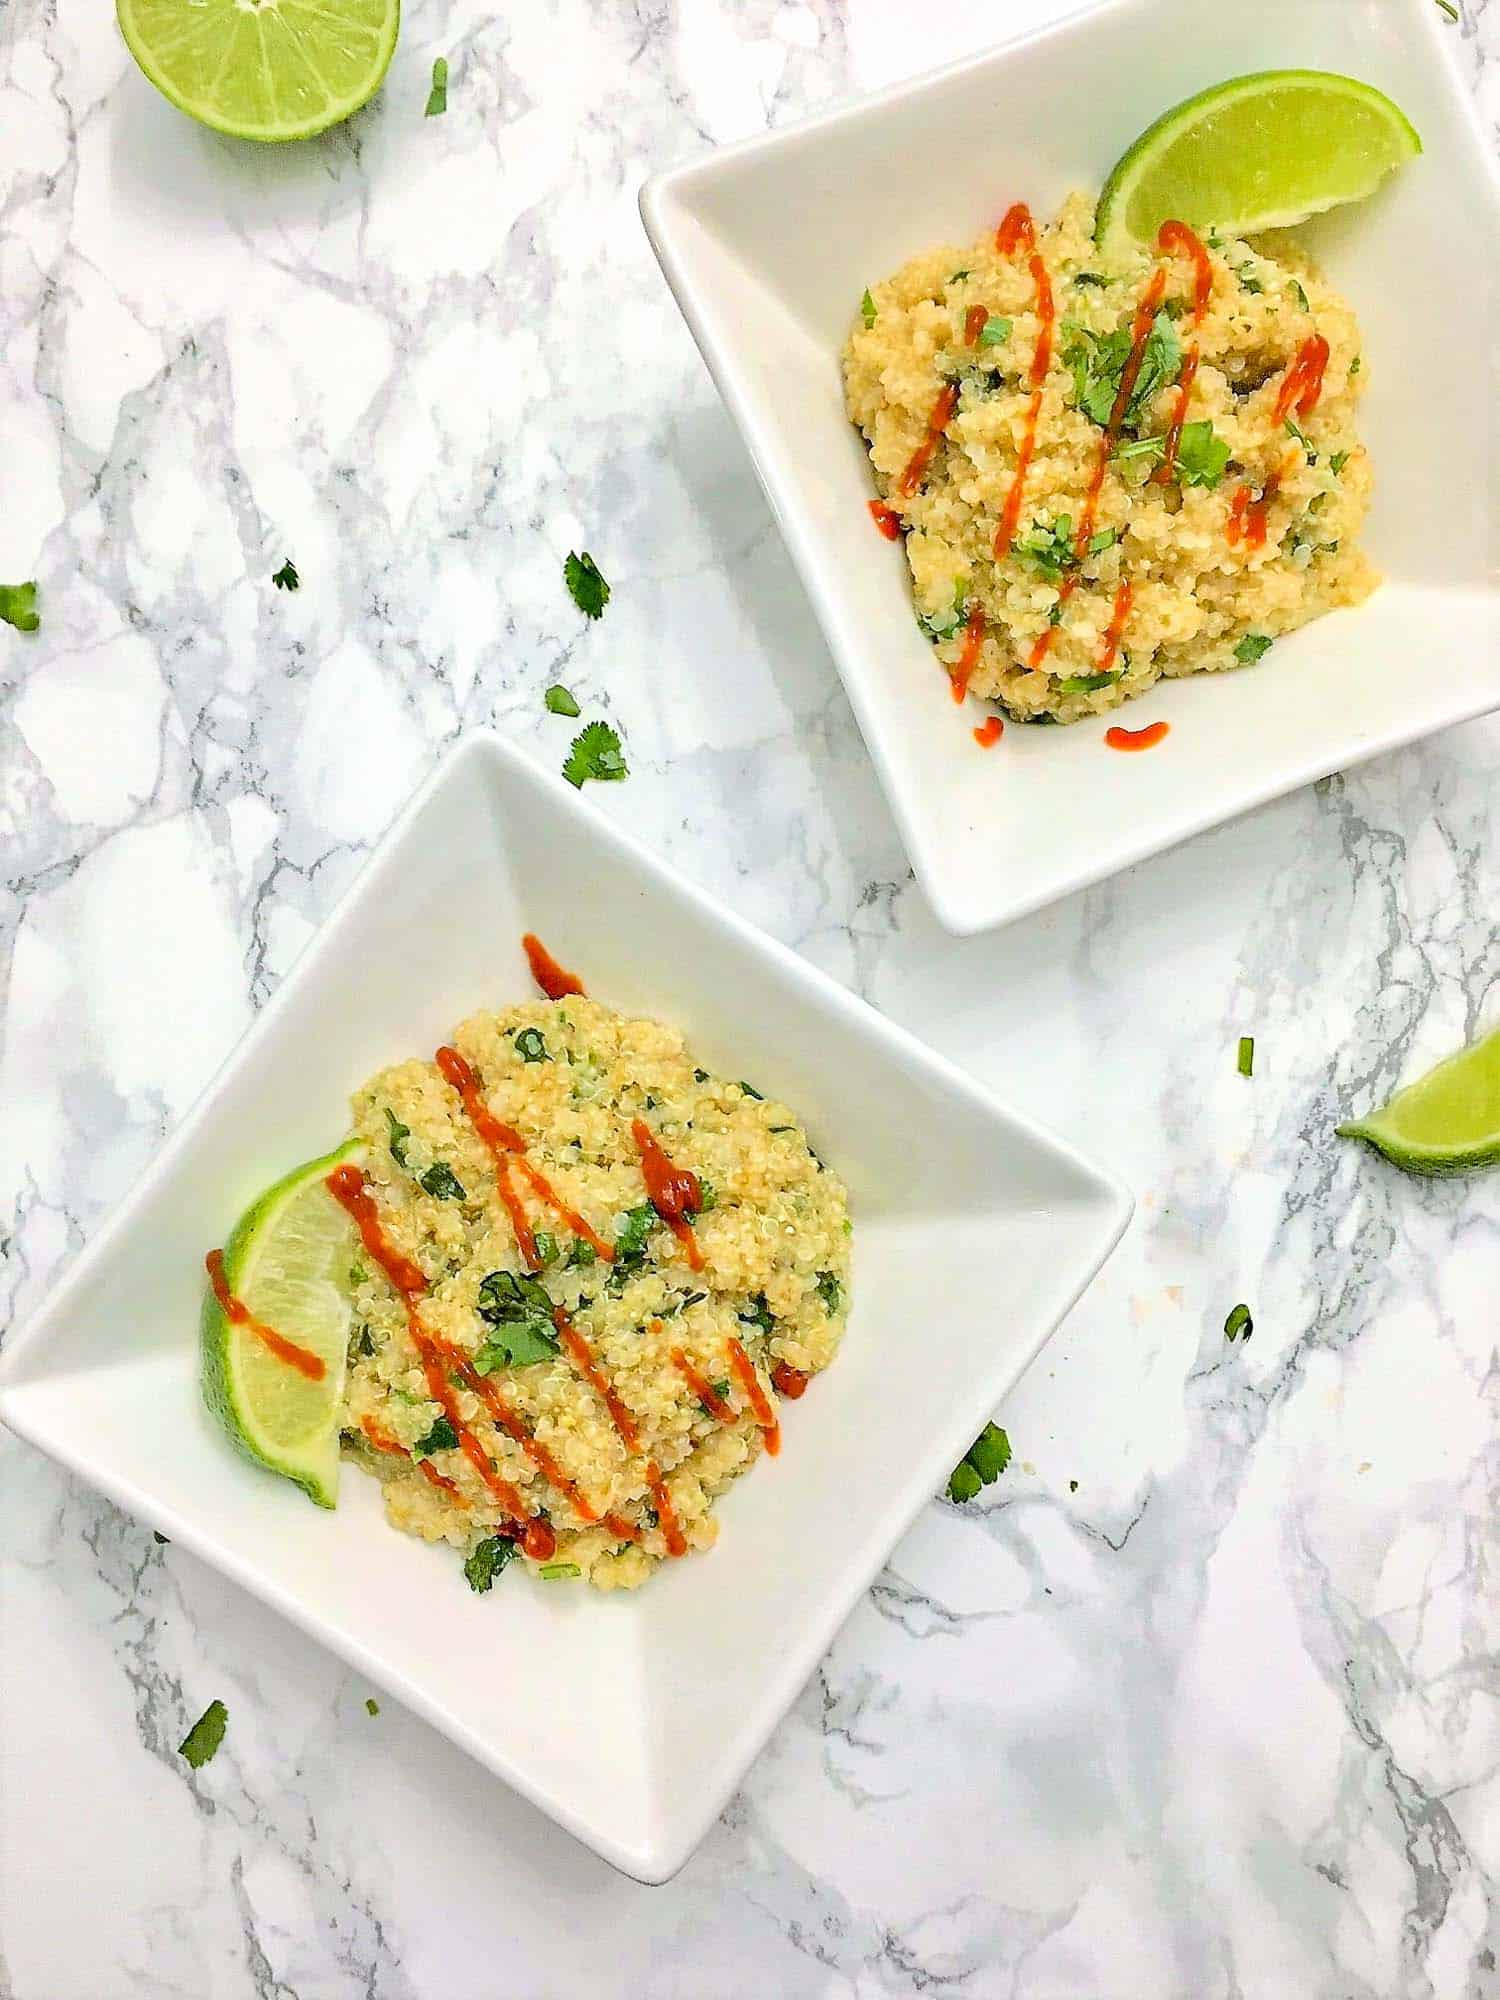 cooked quinoa in square dish with lime wedge and hot sauce drizzled on top